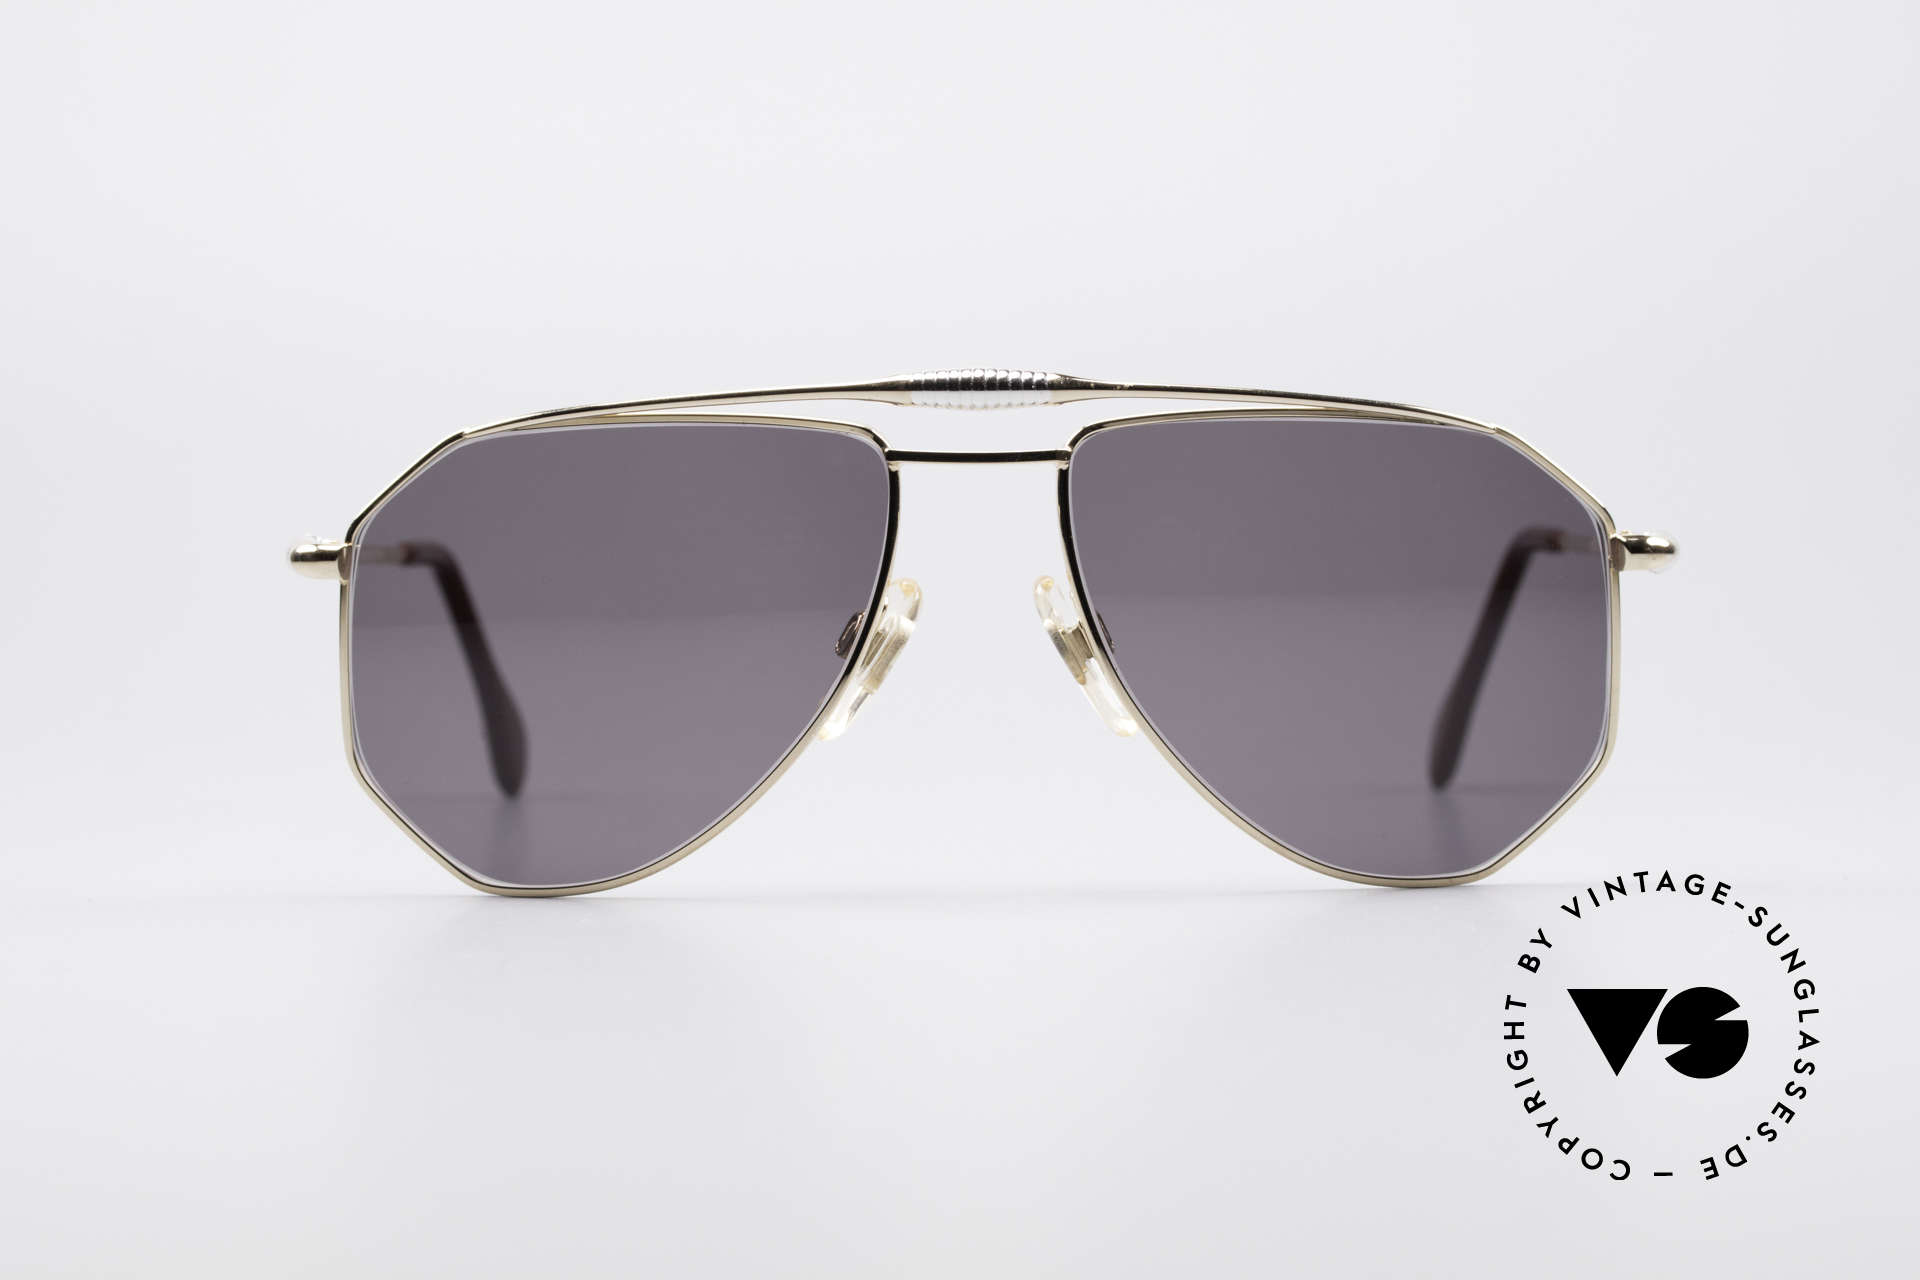 Zollitsch Cadre 120 Medium 80's Aviator Shades, distinctive frame for men (outstanding quality, Germany), Made for Men